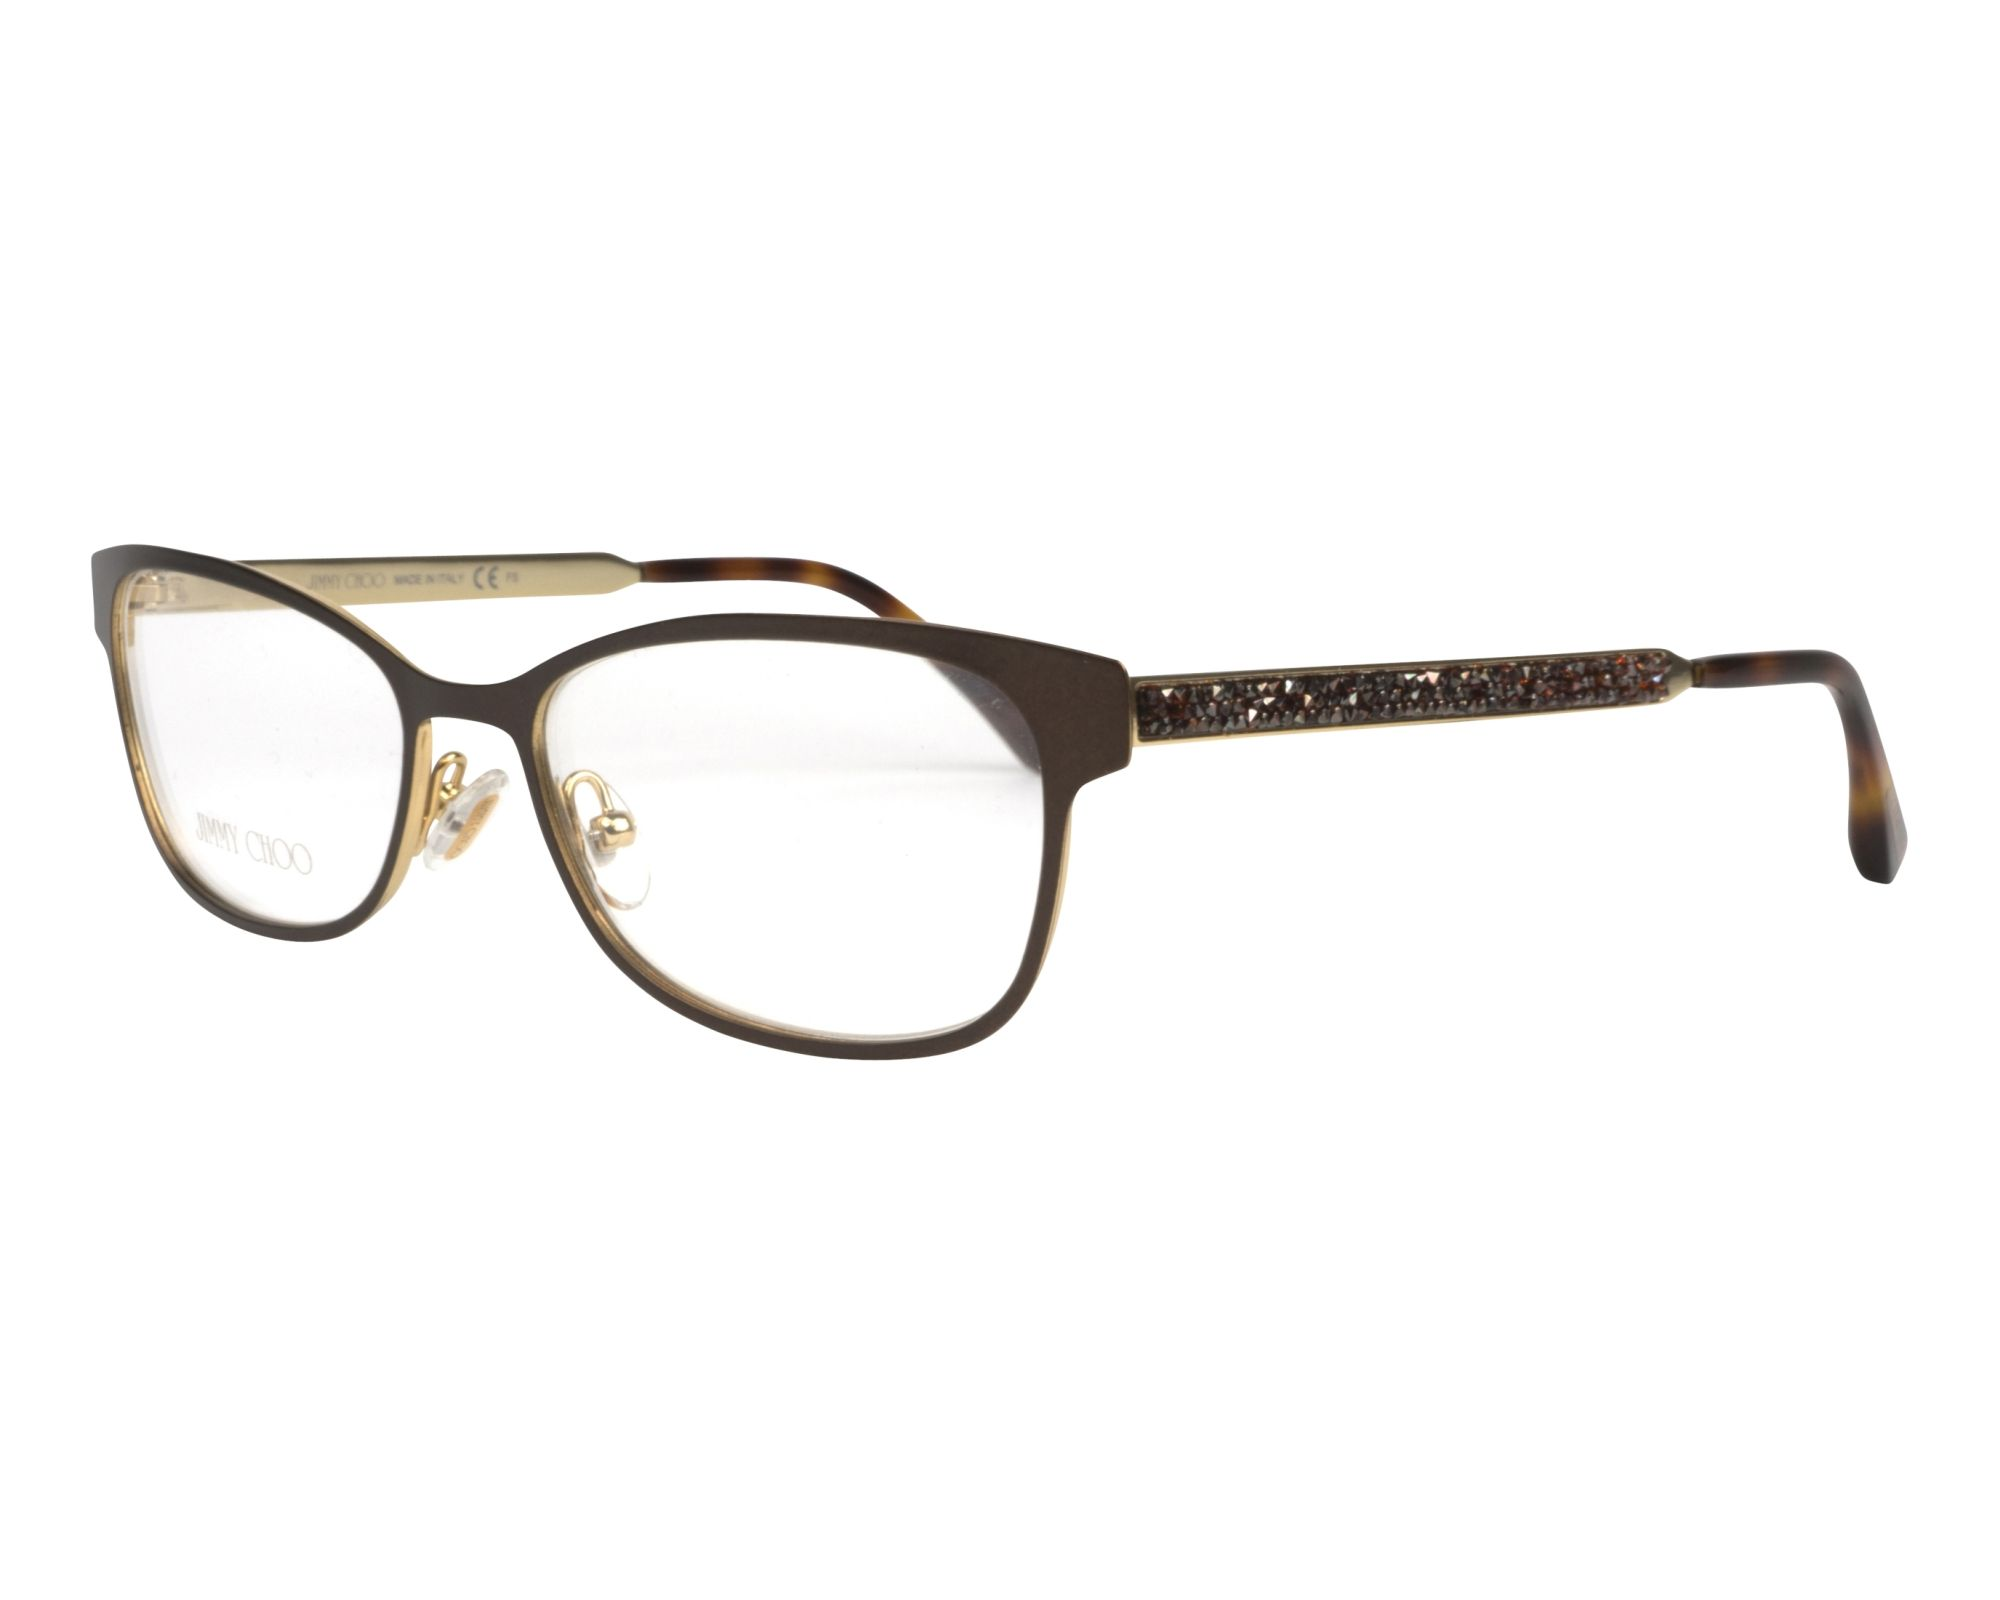 d732f7cac37 eyeglasses Jimmy Choo JC-203 4IN 52-16 Brown Gold profile view